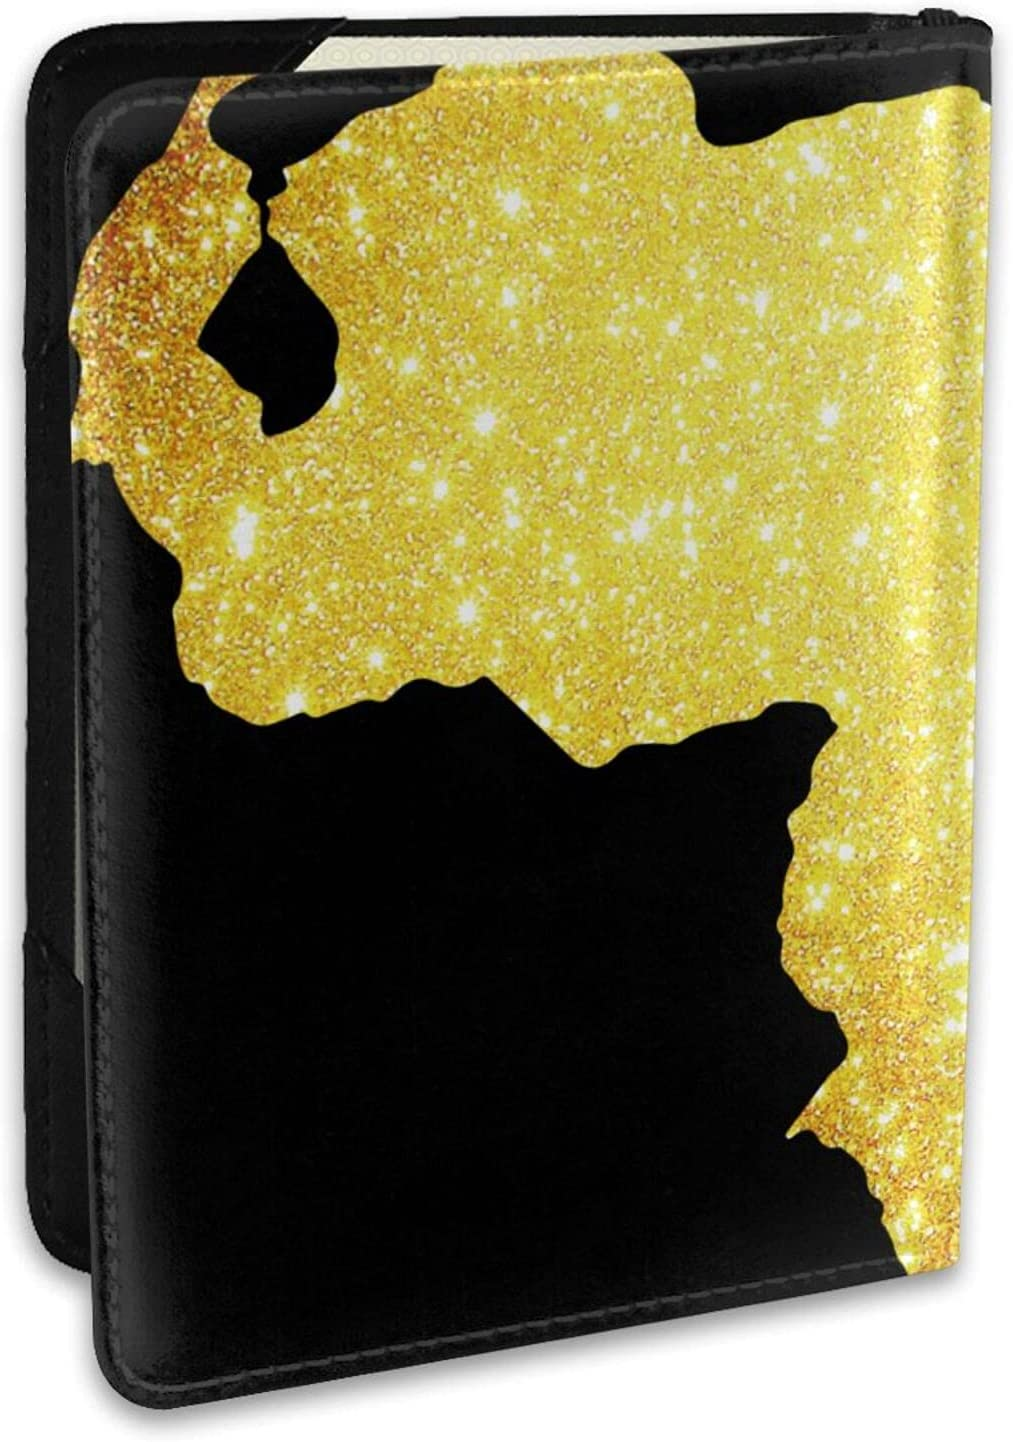 Gold Venezuela Map Memphis Mall Leather Passport Holder Case Credit Dealing full price reduction Ca Cover